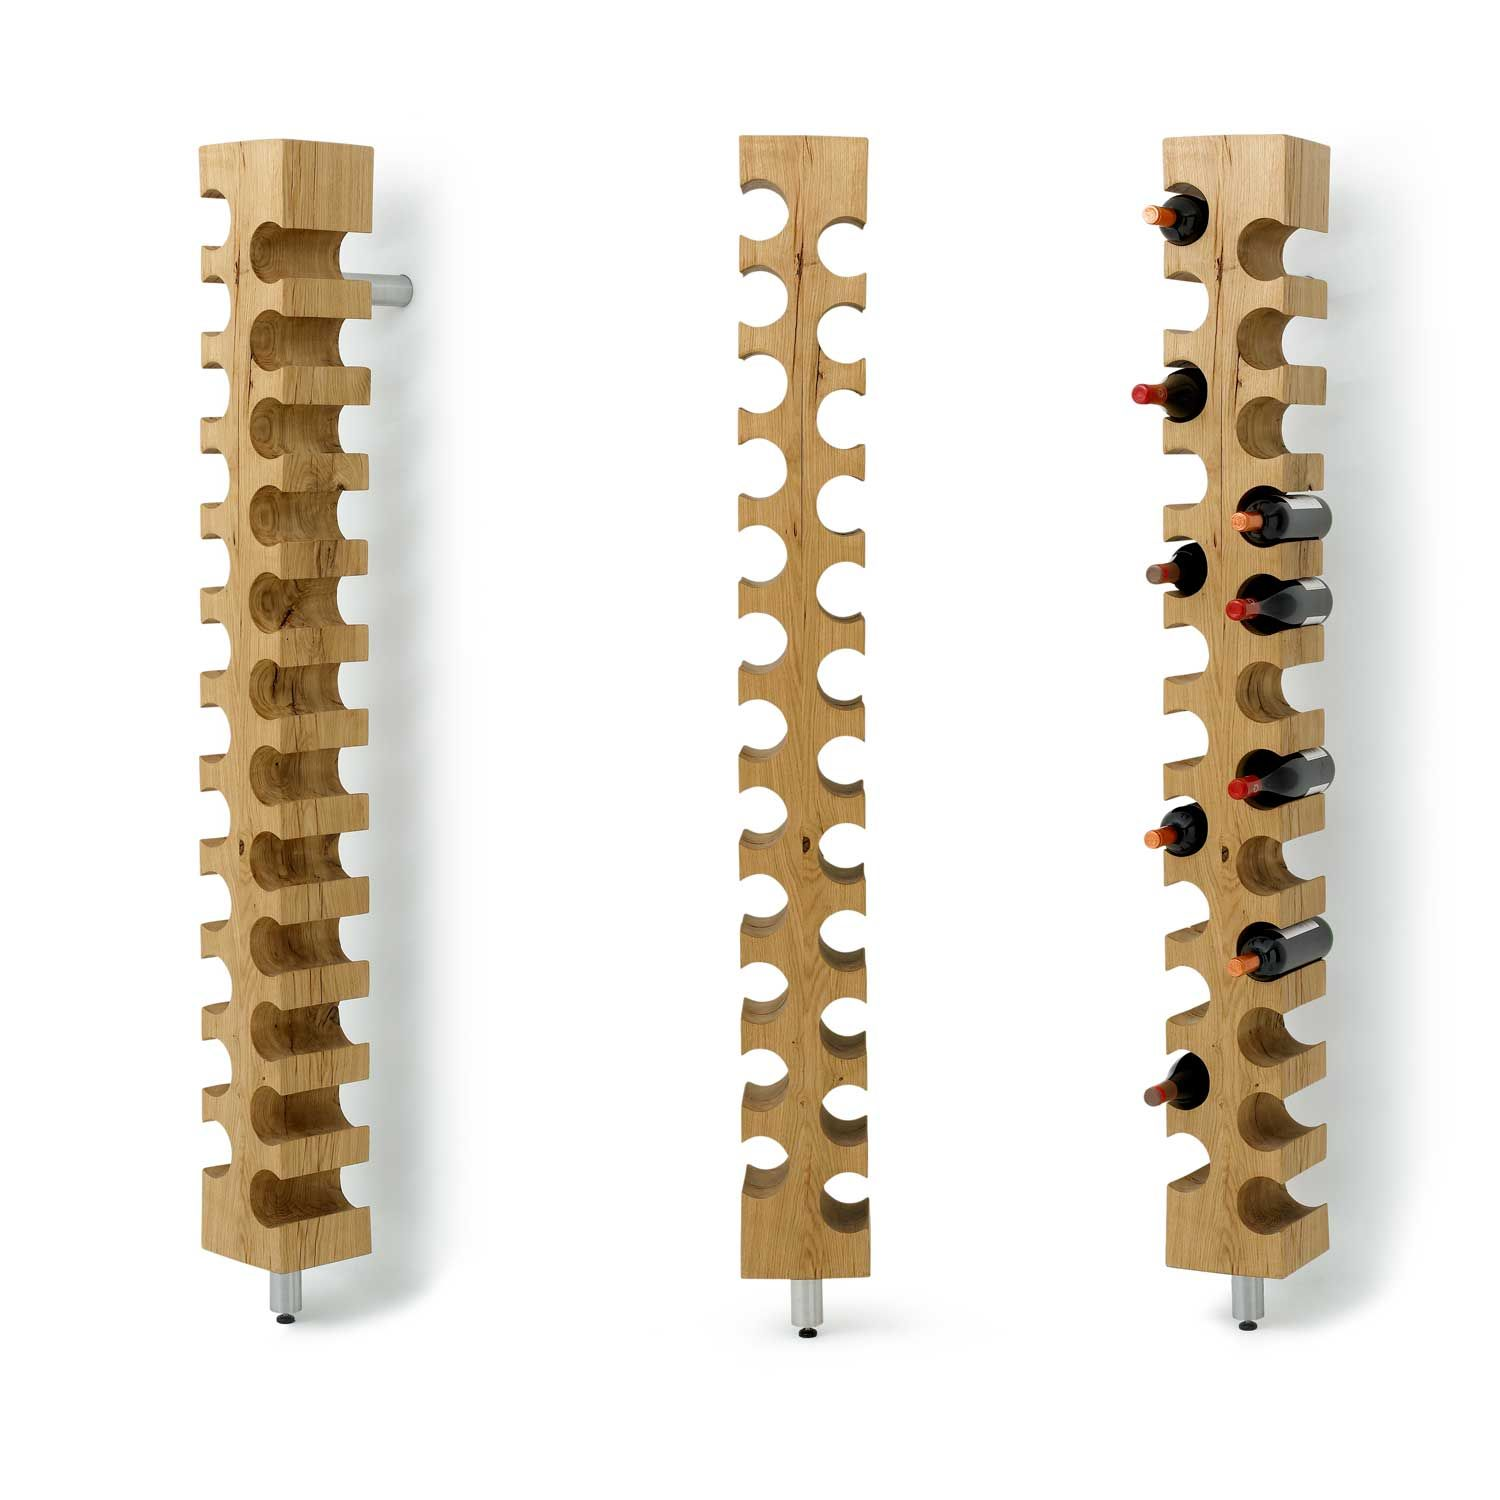 Furniture. curvy hole brown wooden wall wine racks with